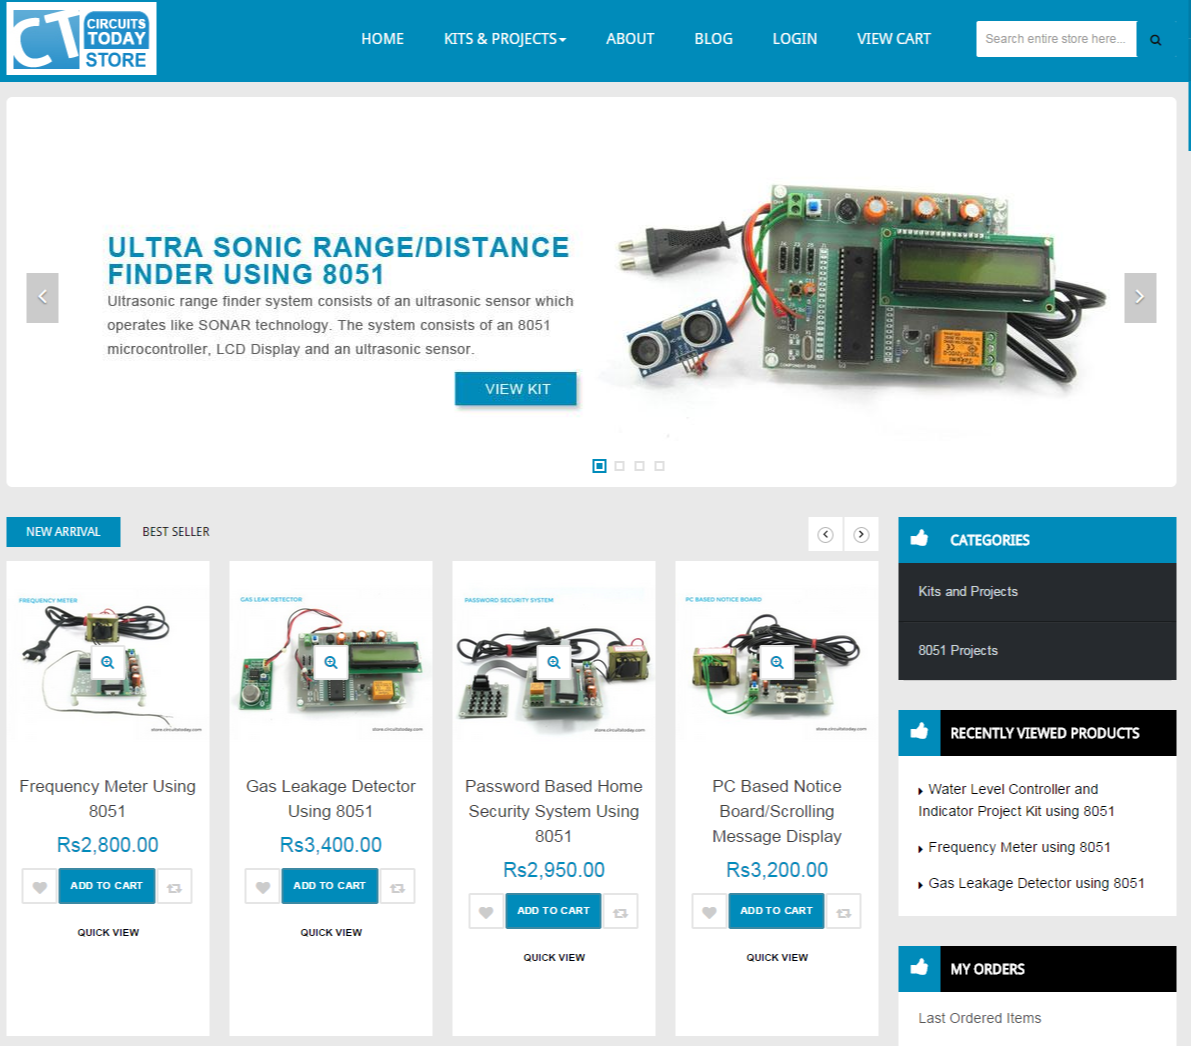 Online Store To Buy Electronic Components And Project Kits In India Circuits Electronics Circuit Analysis Free Ct Screenshot